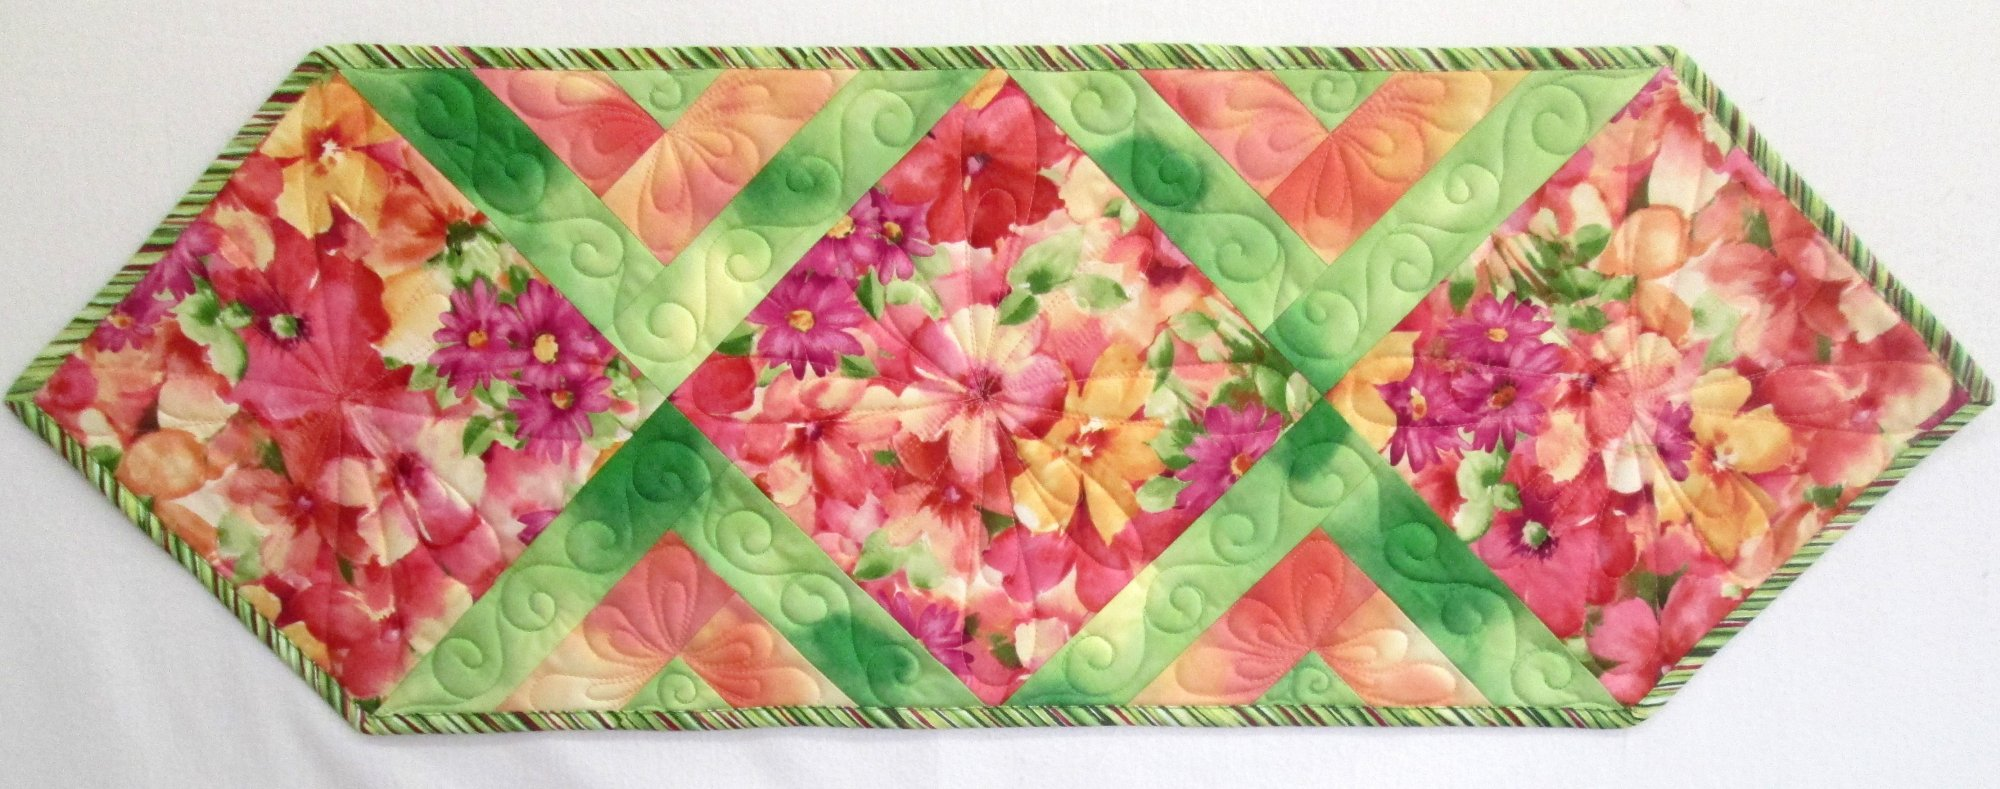 Sophia In the Middle Floral Table Runner Kit